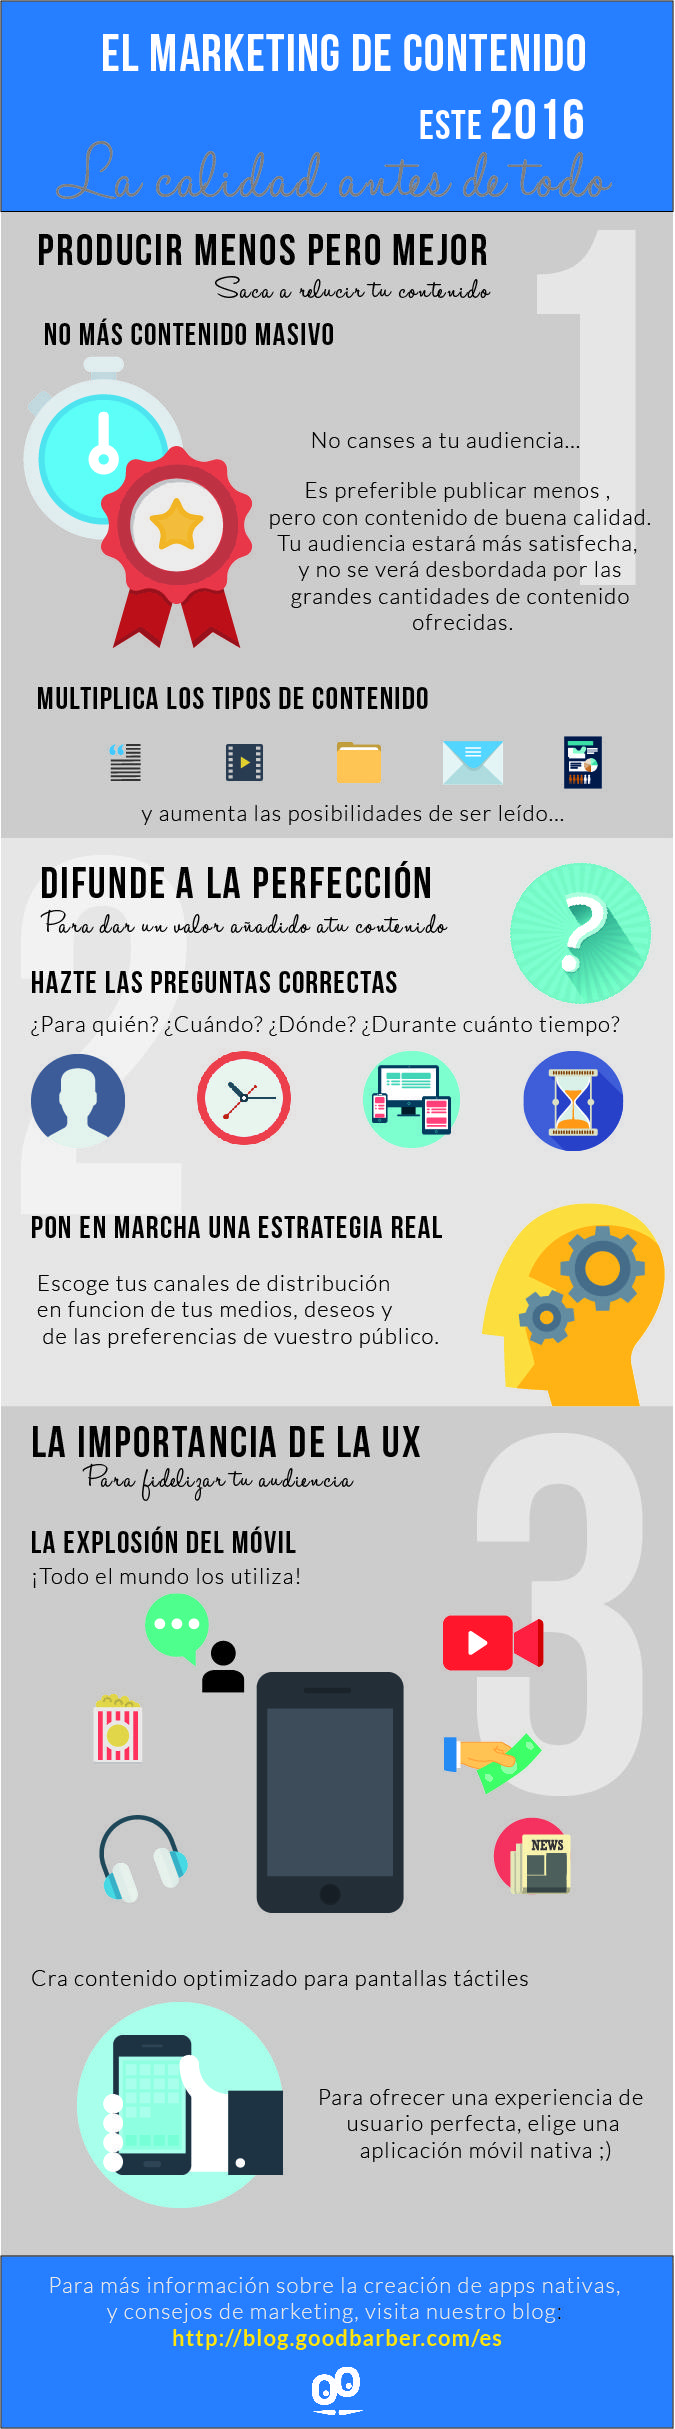 Marketing de Contenidos - Tendencias para el 2016